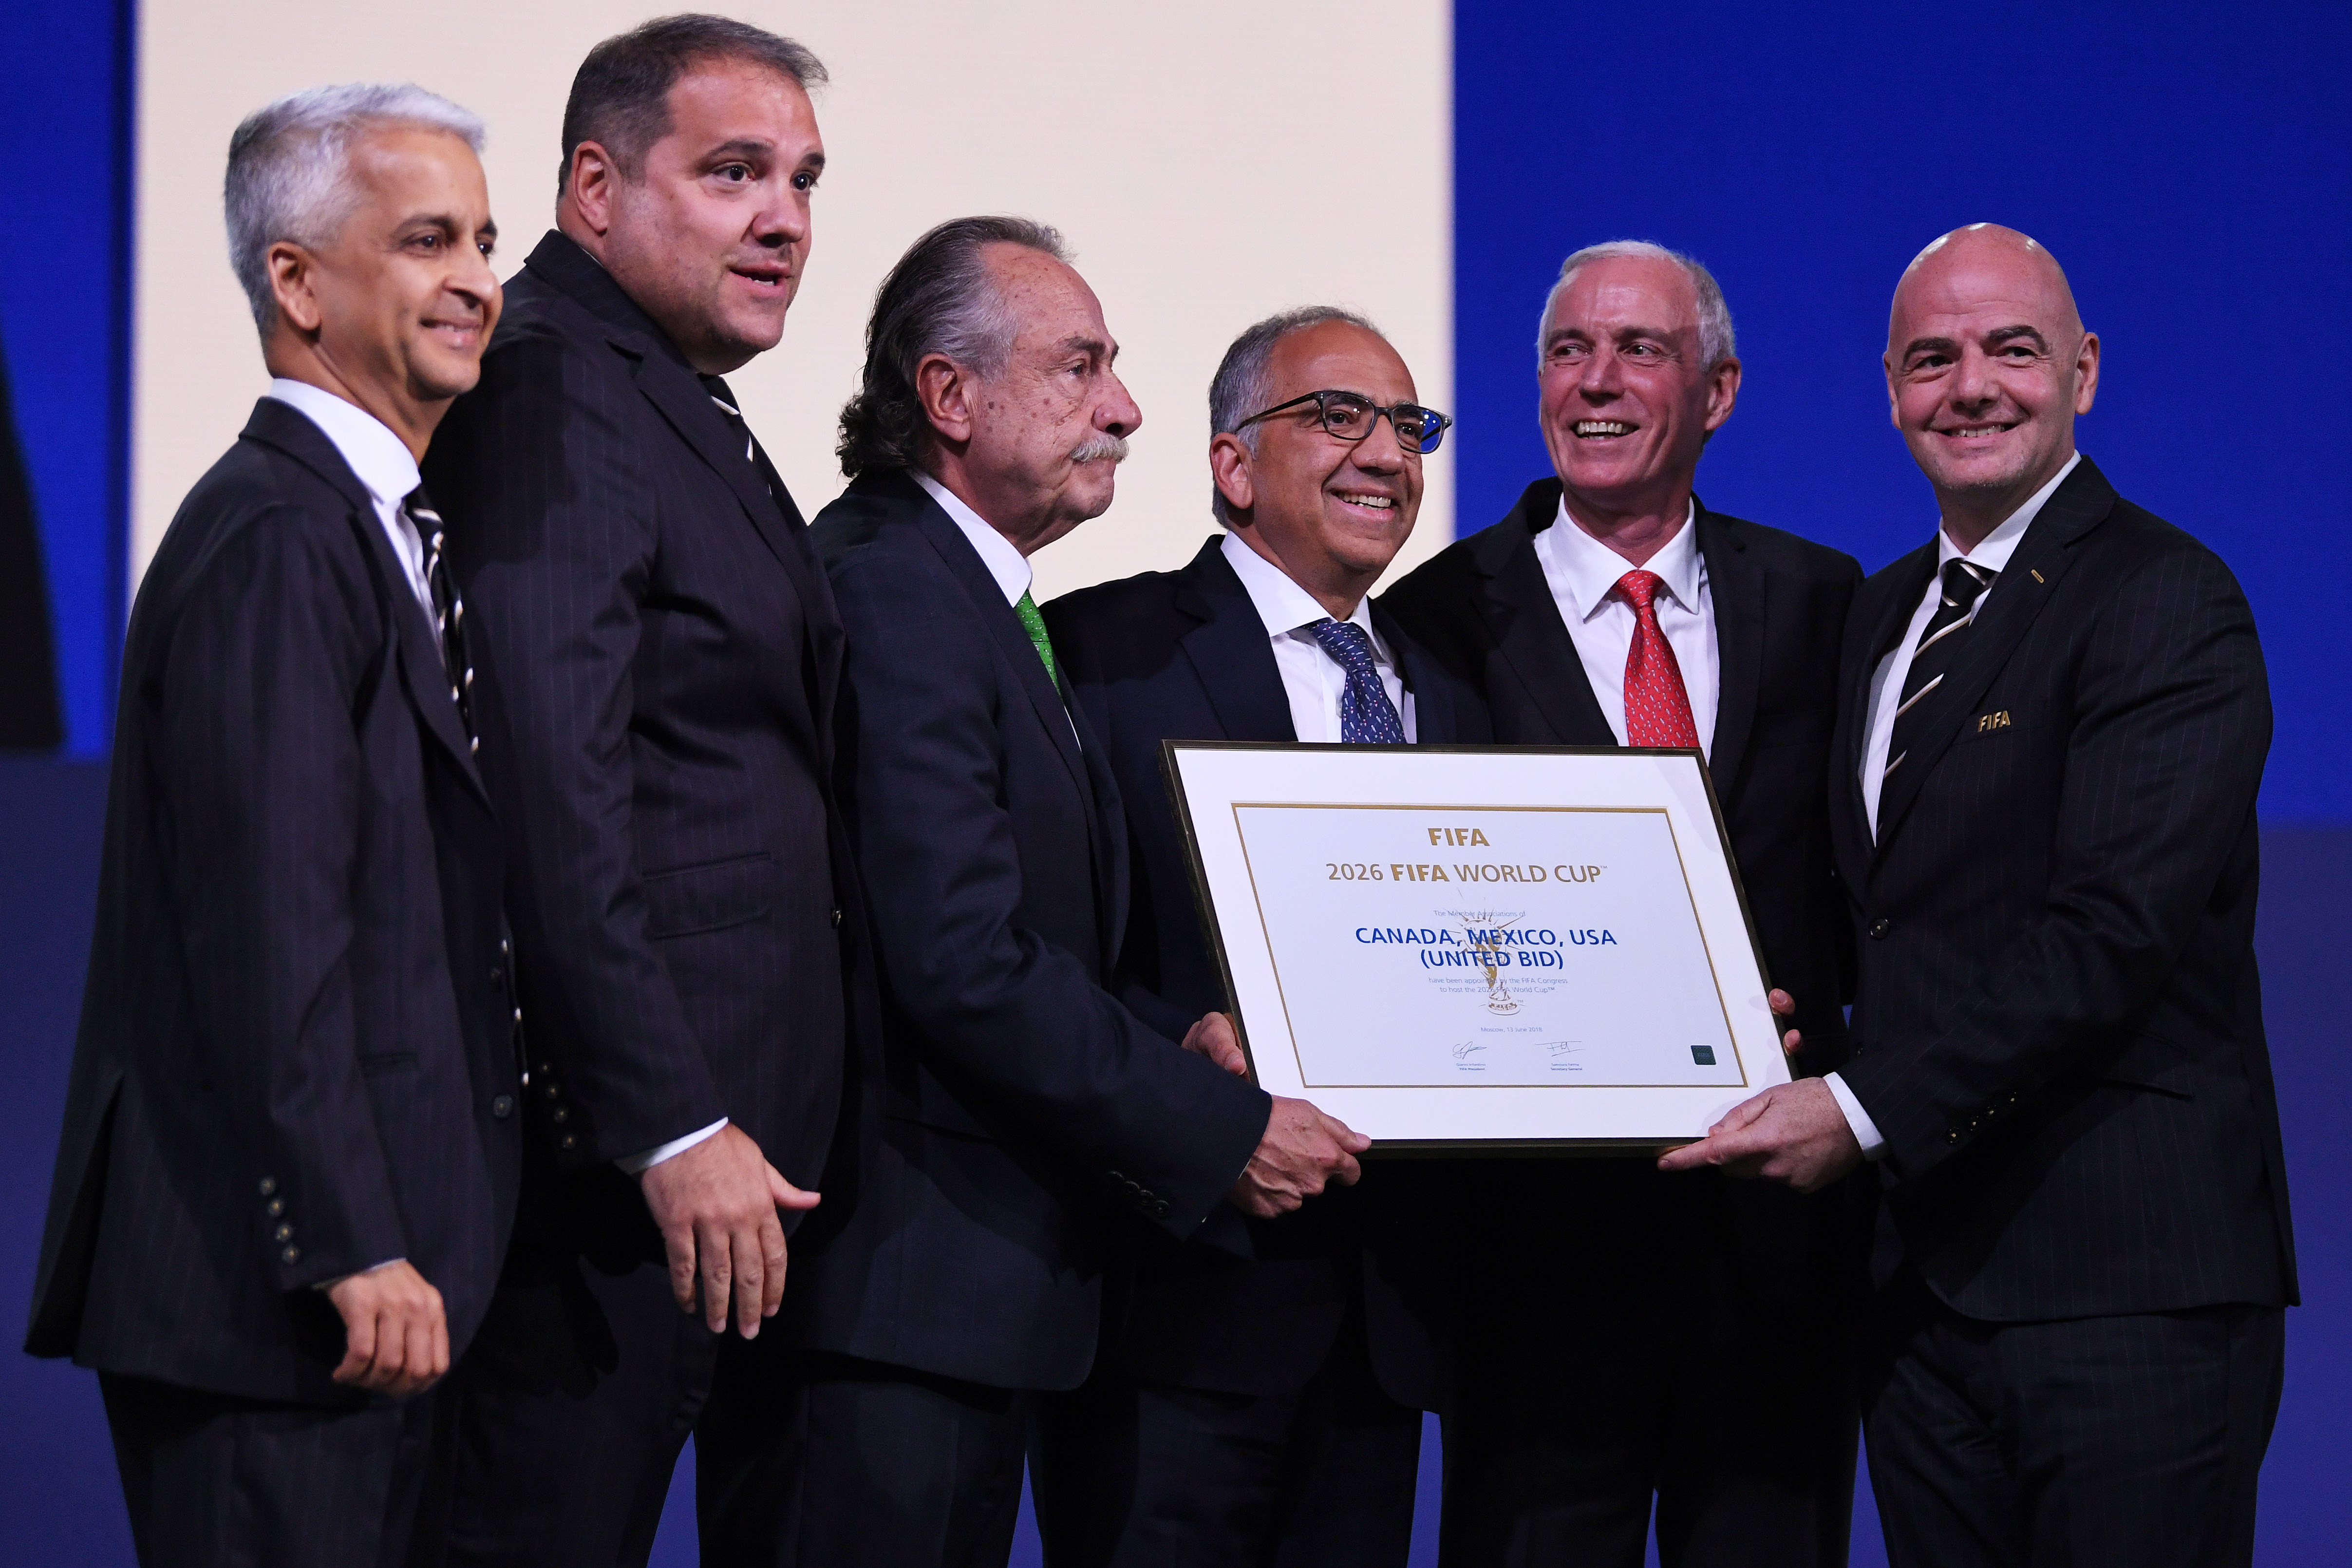 United Bid of Canada, Mexico and the United States wins right to host 2026 World Cup